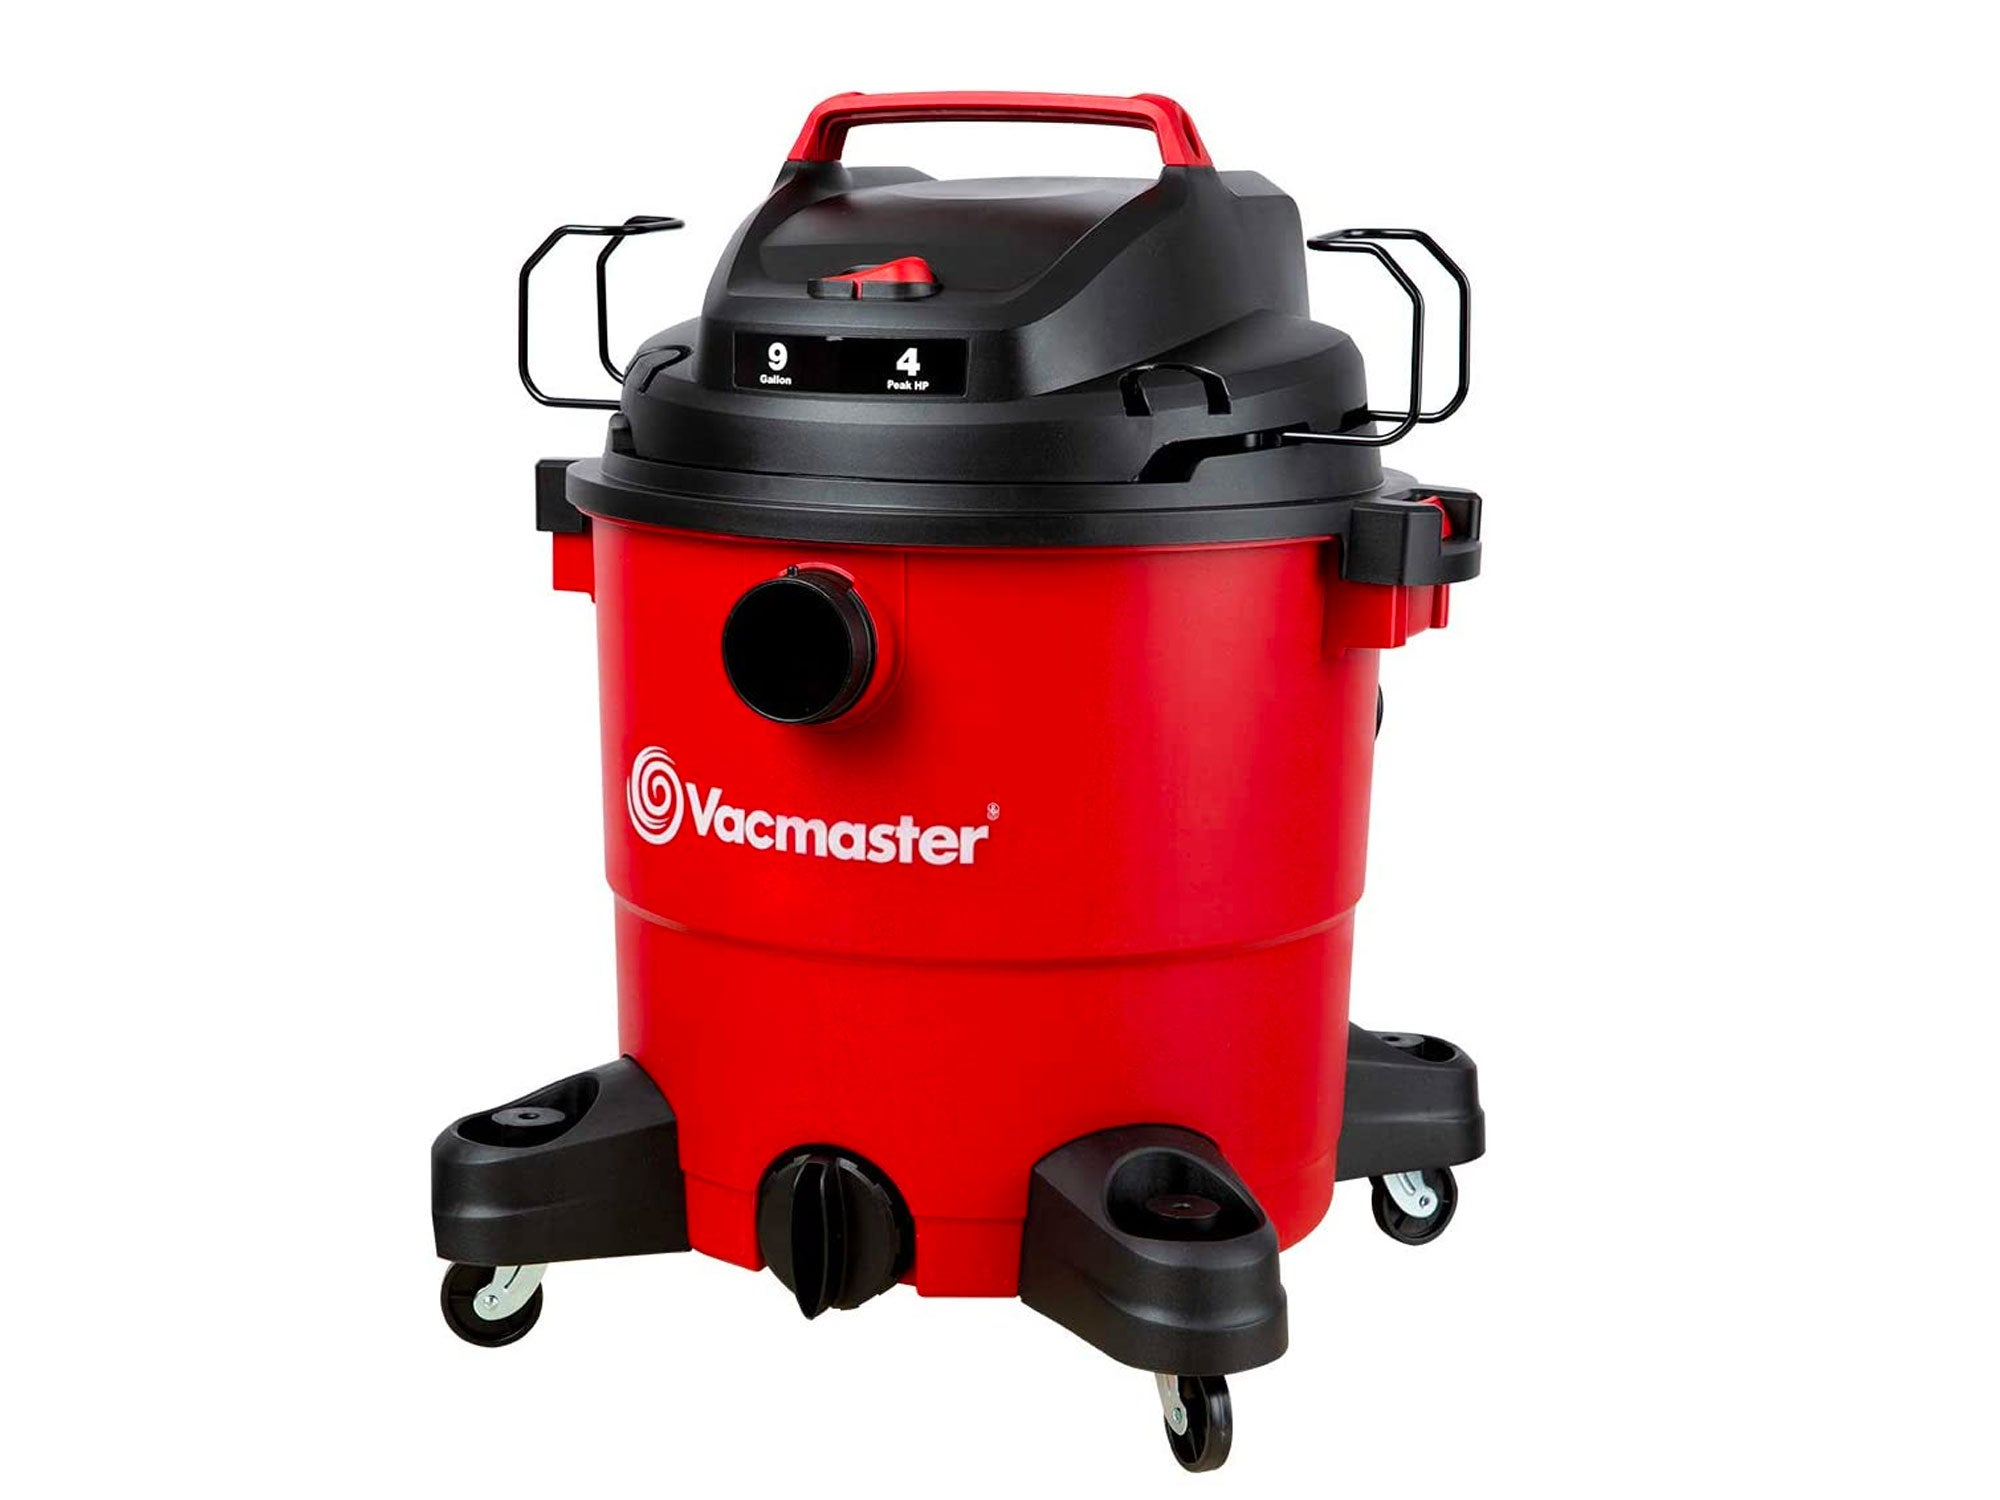 Vacmaster Red Edition Portable Wet Dry Shop Vacuum 9 Gallon 4 Peak HP 1-7/8 inch Hose